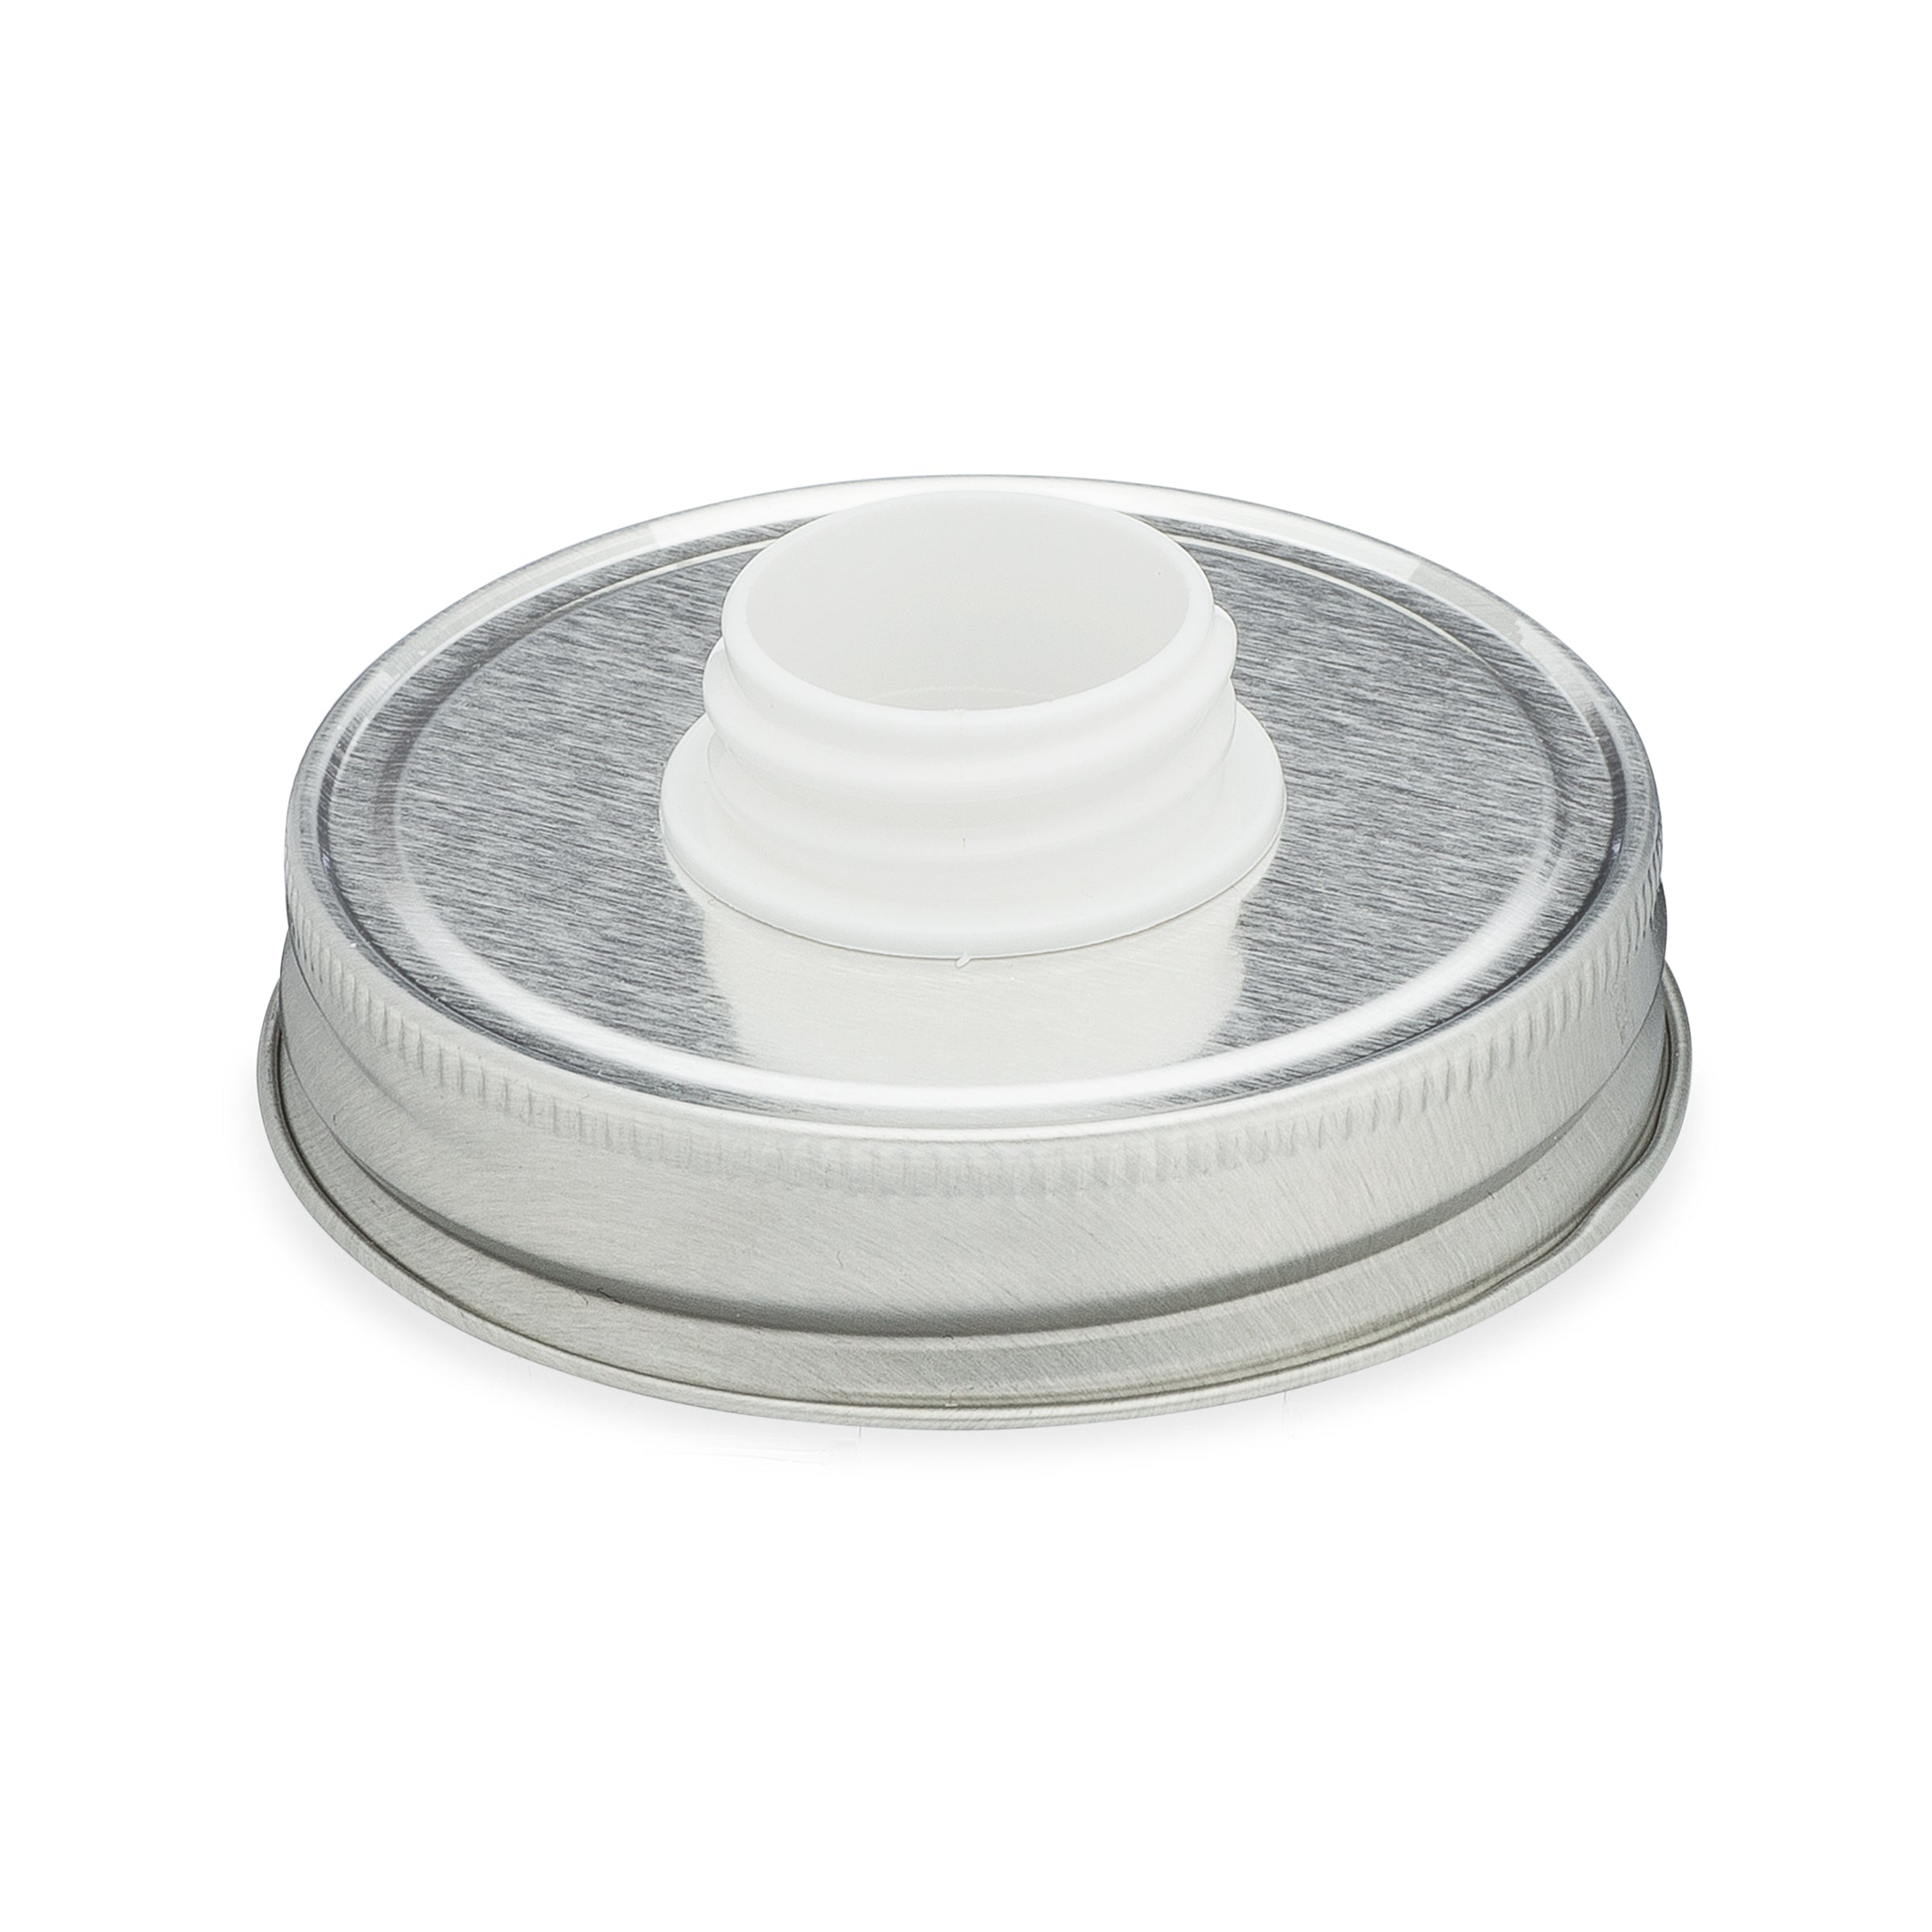 28-410/70-400 Metal Adaptor Cap